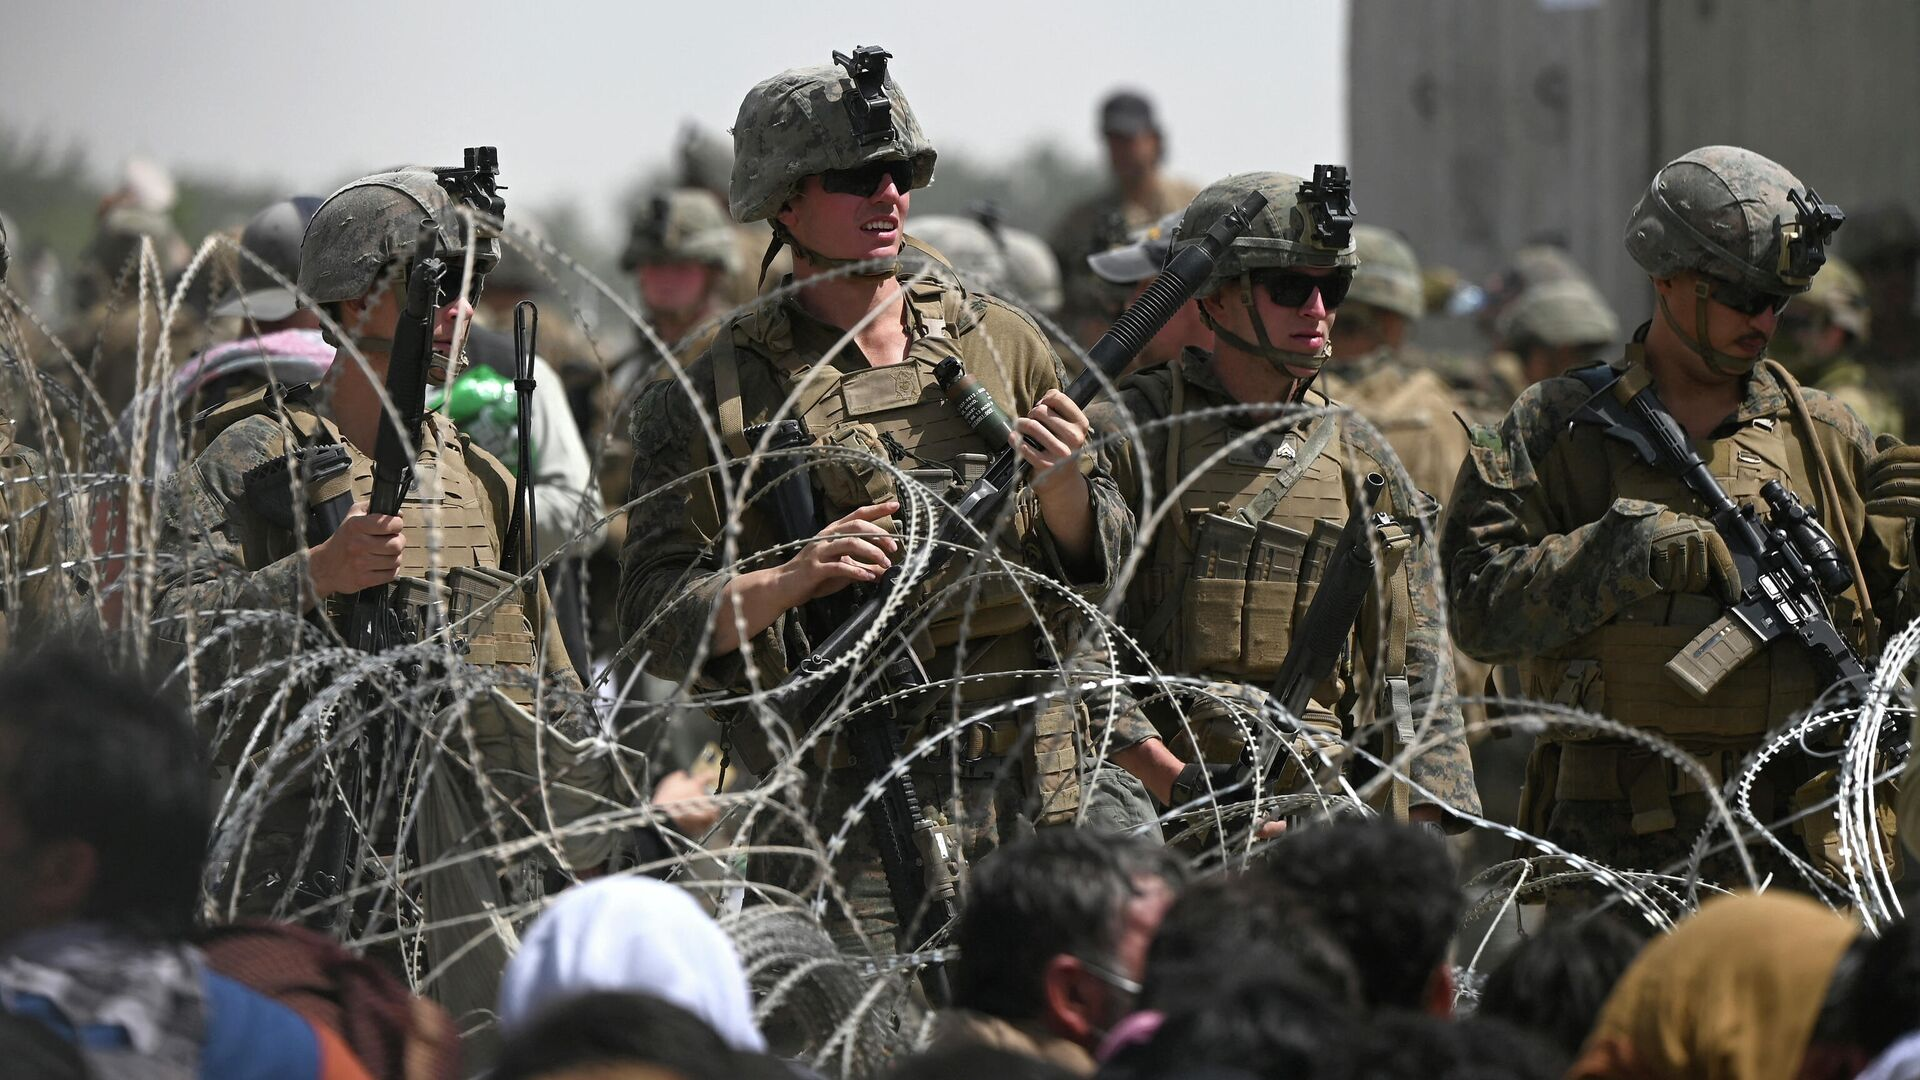 US soldiers stand guard behind barbed wire as Afghans sit on a roadside near the military part of the airport in Kabul on August 20, 2021, hoping to flee from the country after the Taliban's military takeover of Afghanistan - Sputnik International, 1920, 17.09.2021